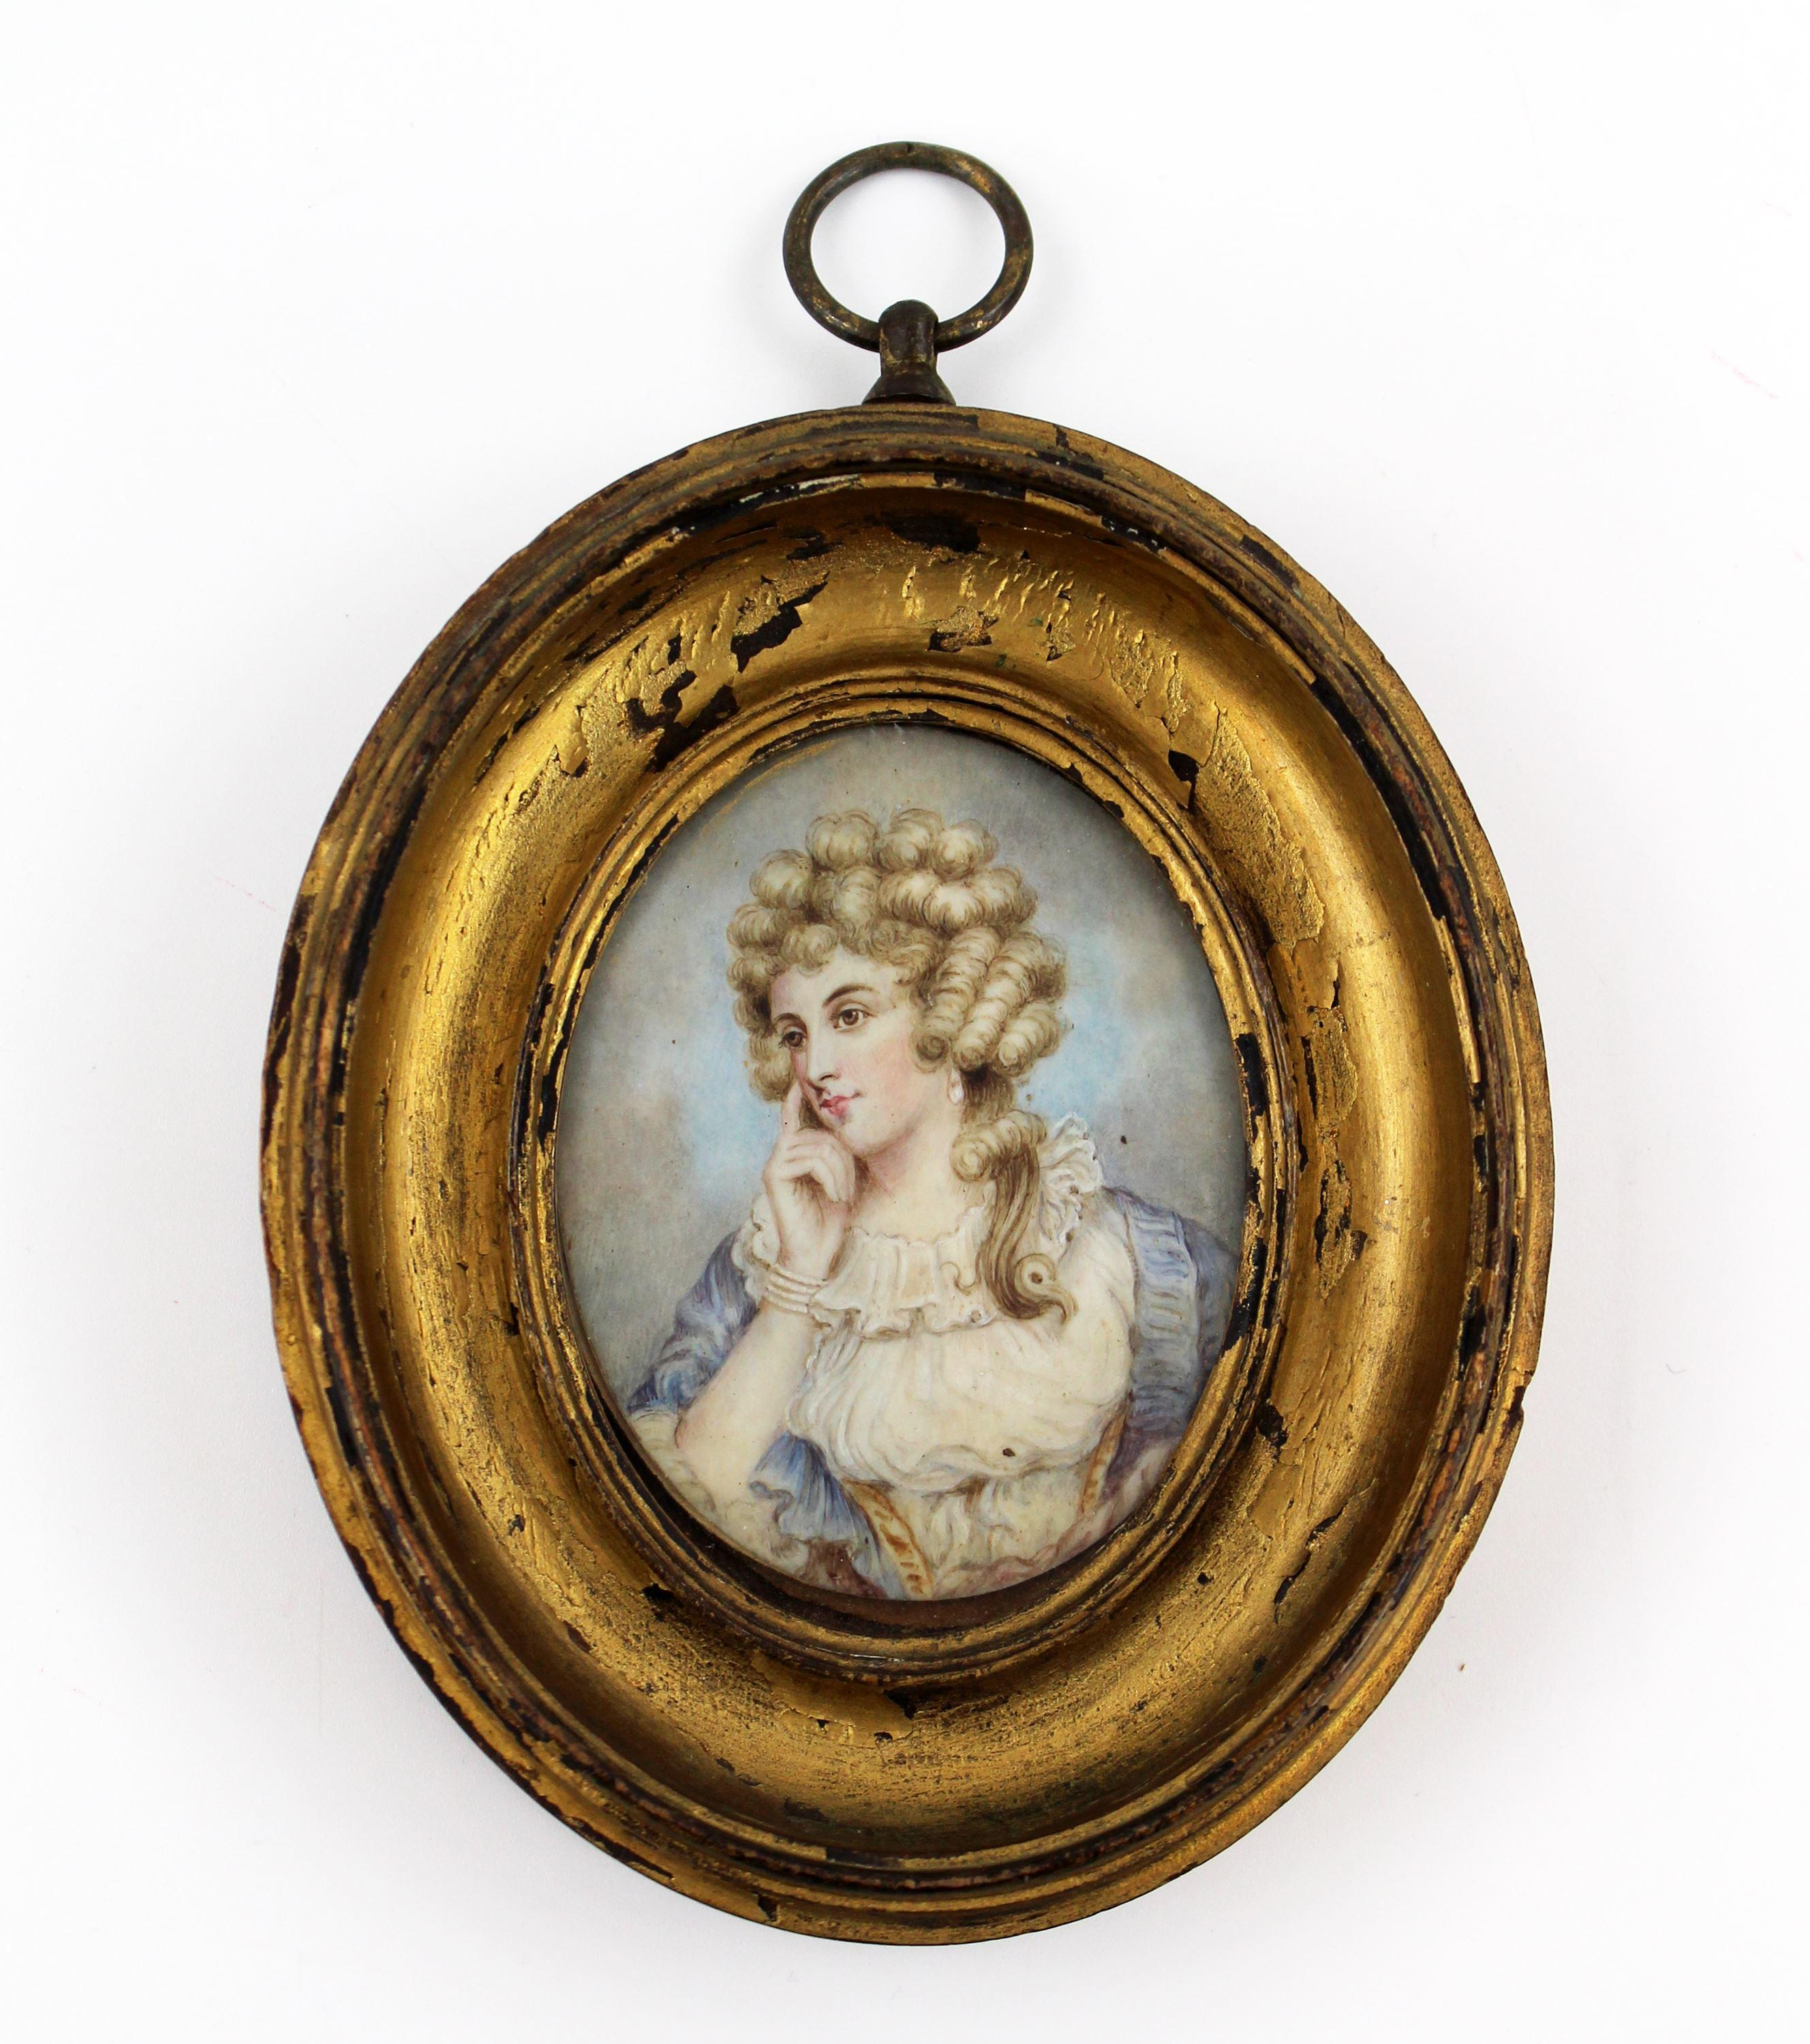 Anna Crouch, Actress & Mistress of the Prince Regent, Miniature Painting